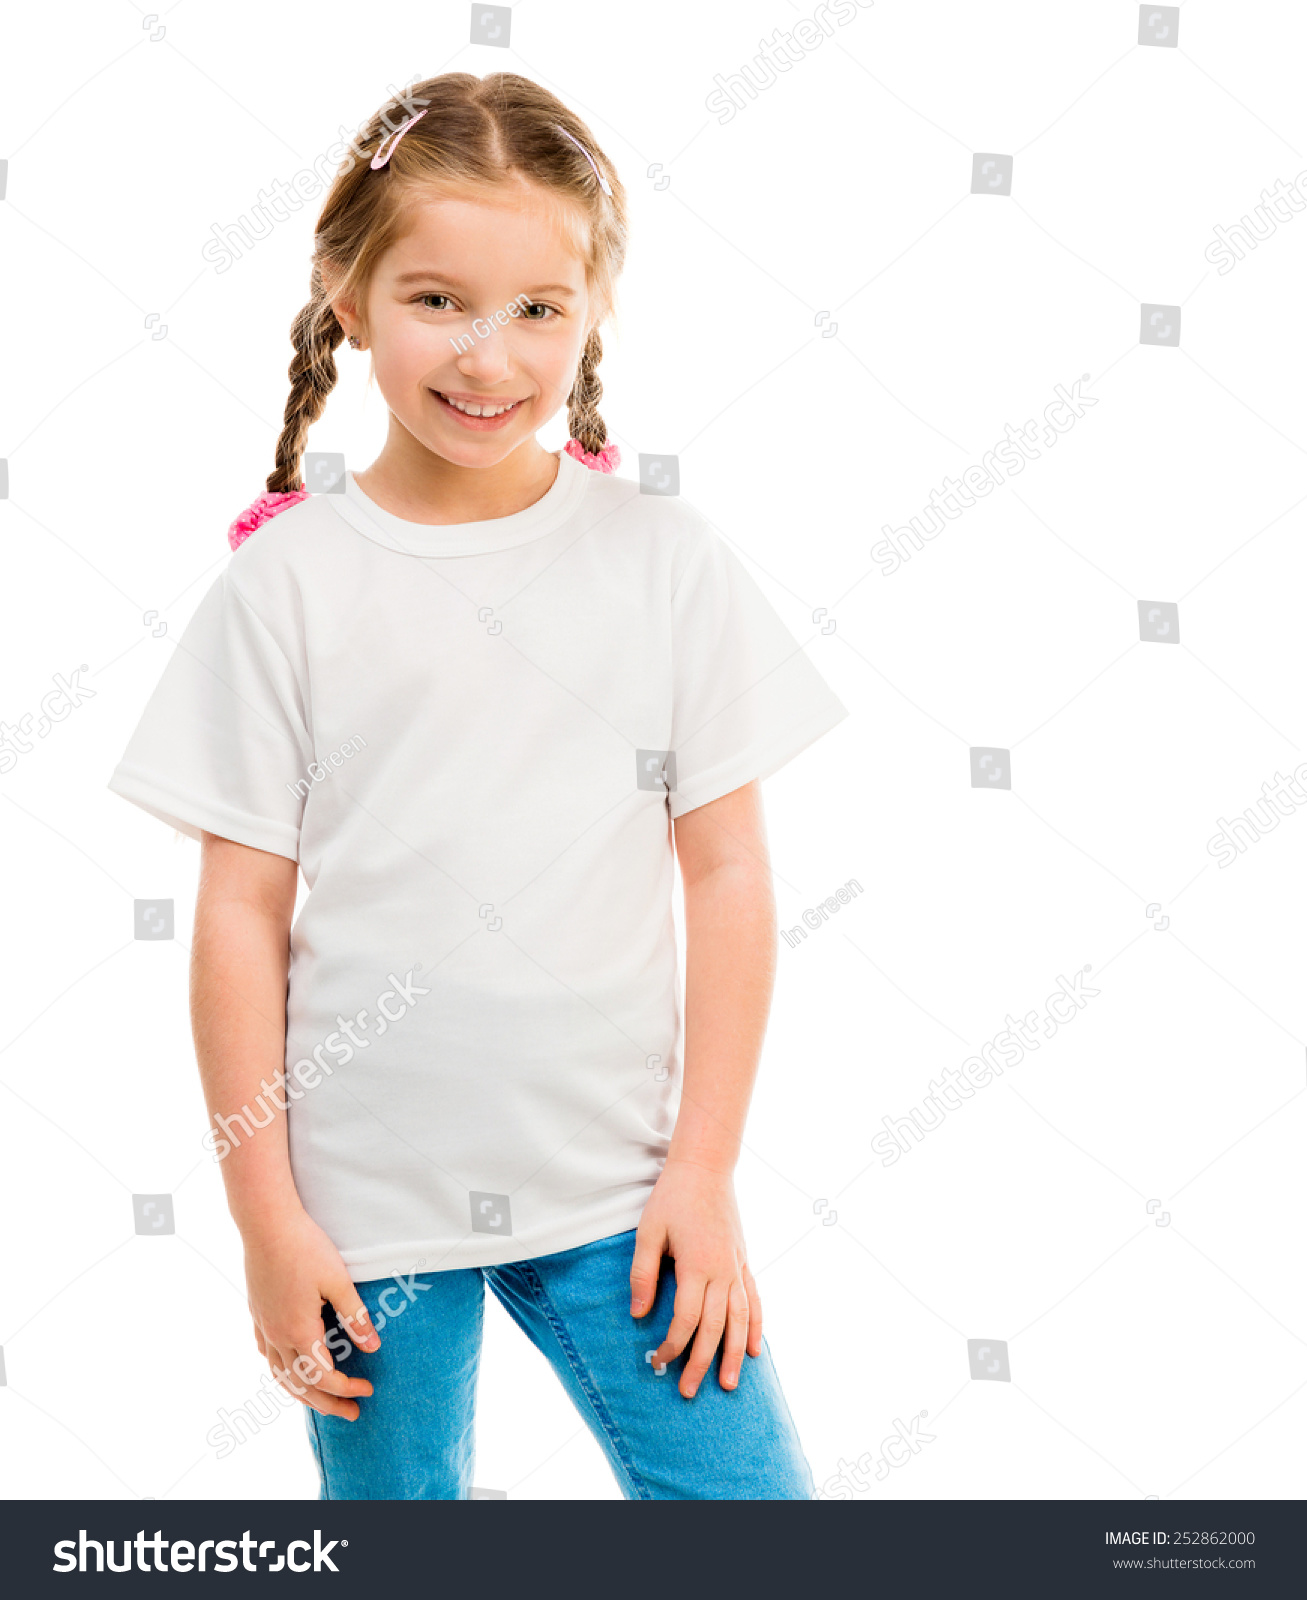 Find great deals on eBay for girls white shirts. Shop with confidence.